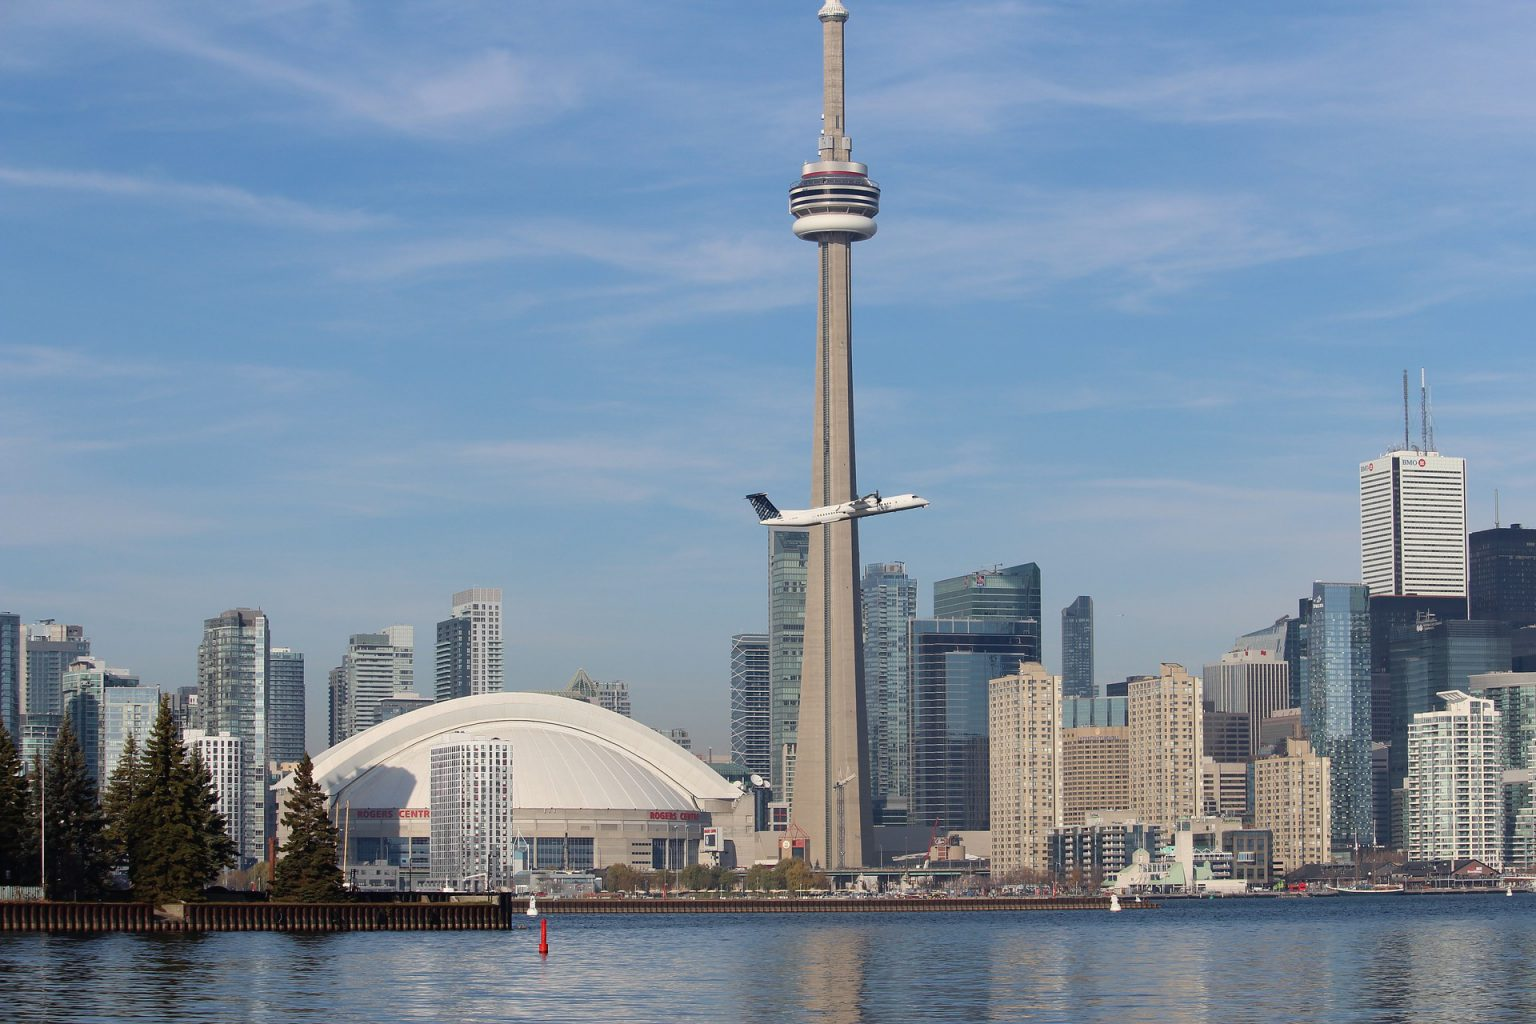 Skyline of Toronto with a plane taking off